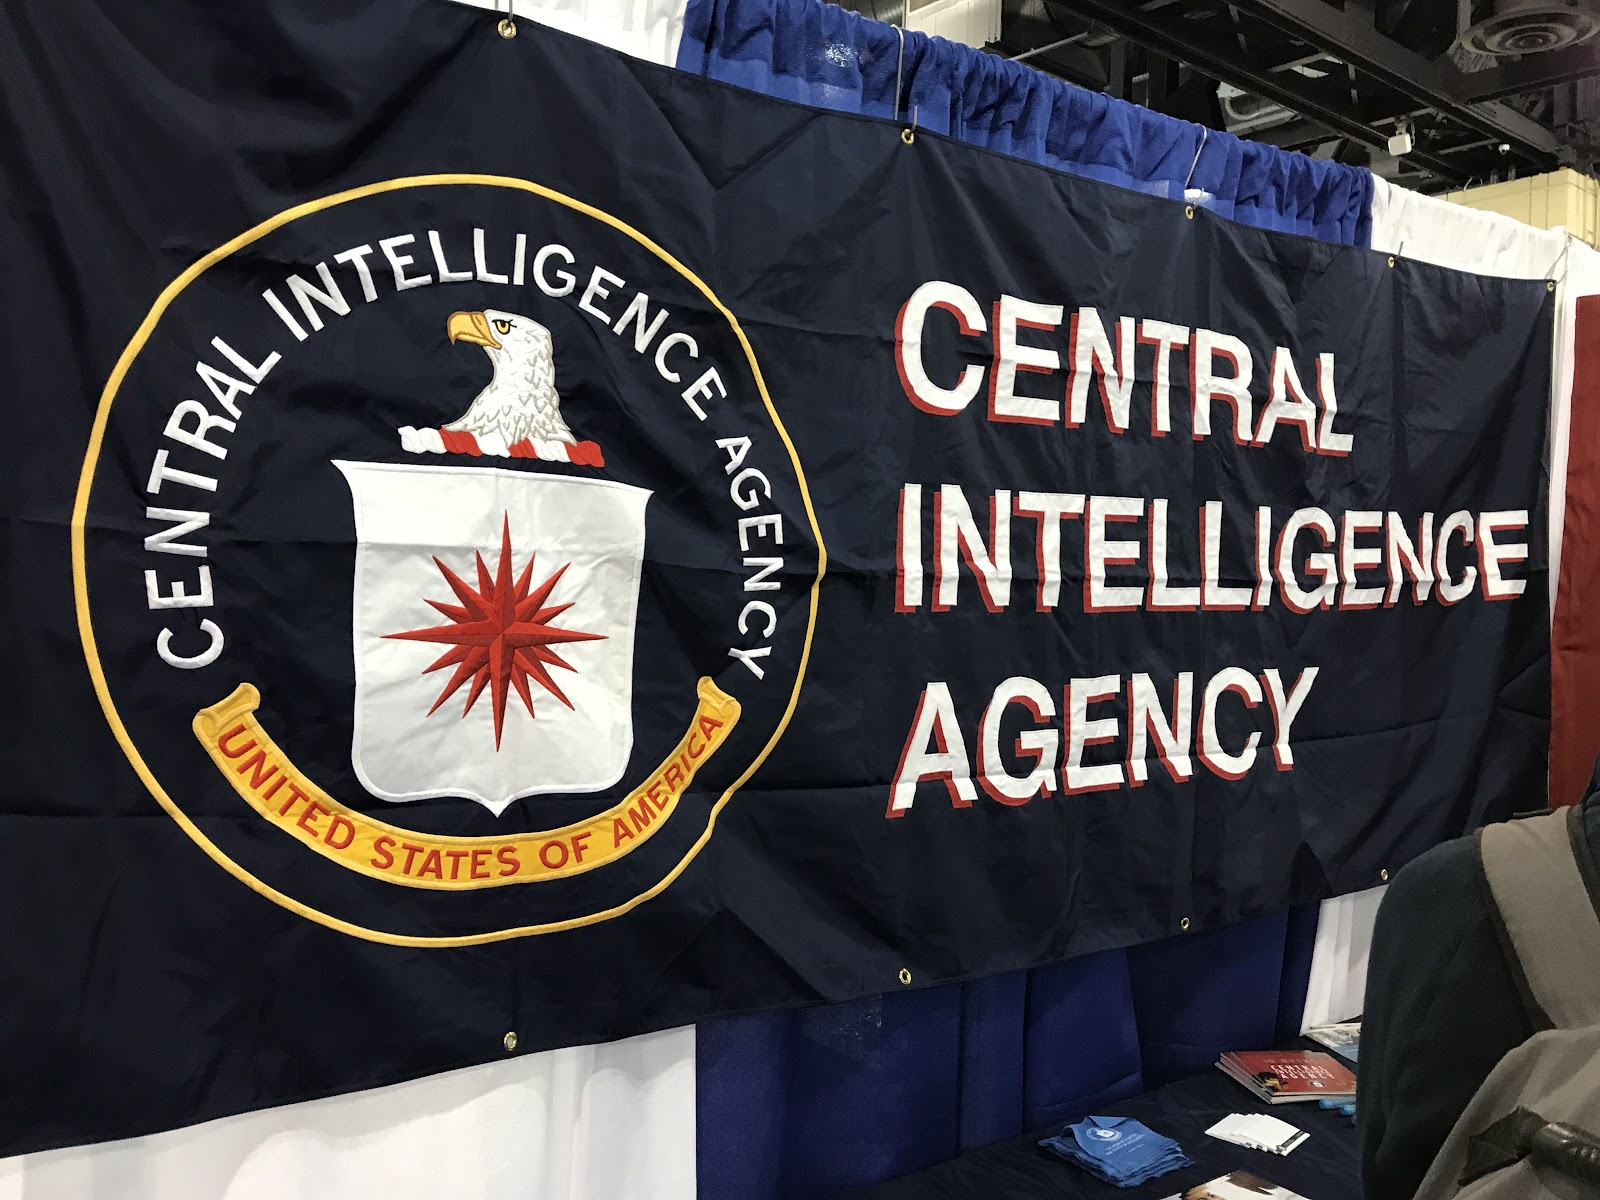 Conference Exhibitions Include Tech, Education, and CIA Recruitment?